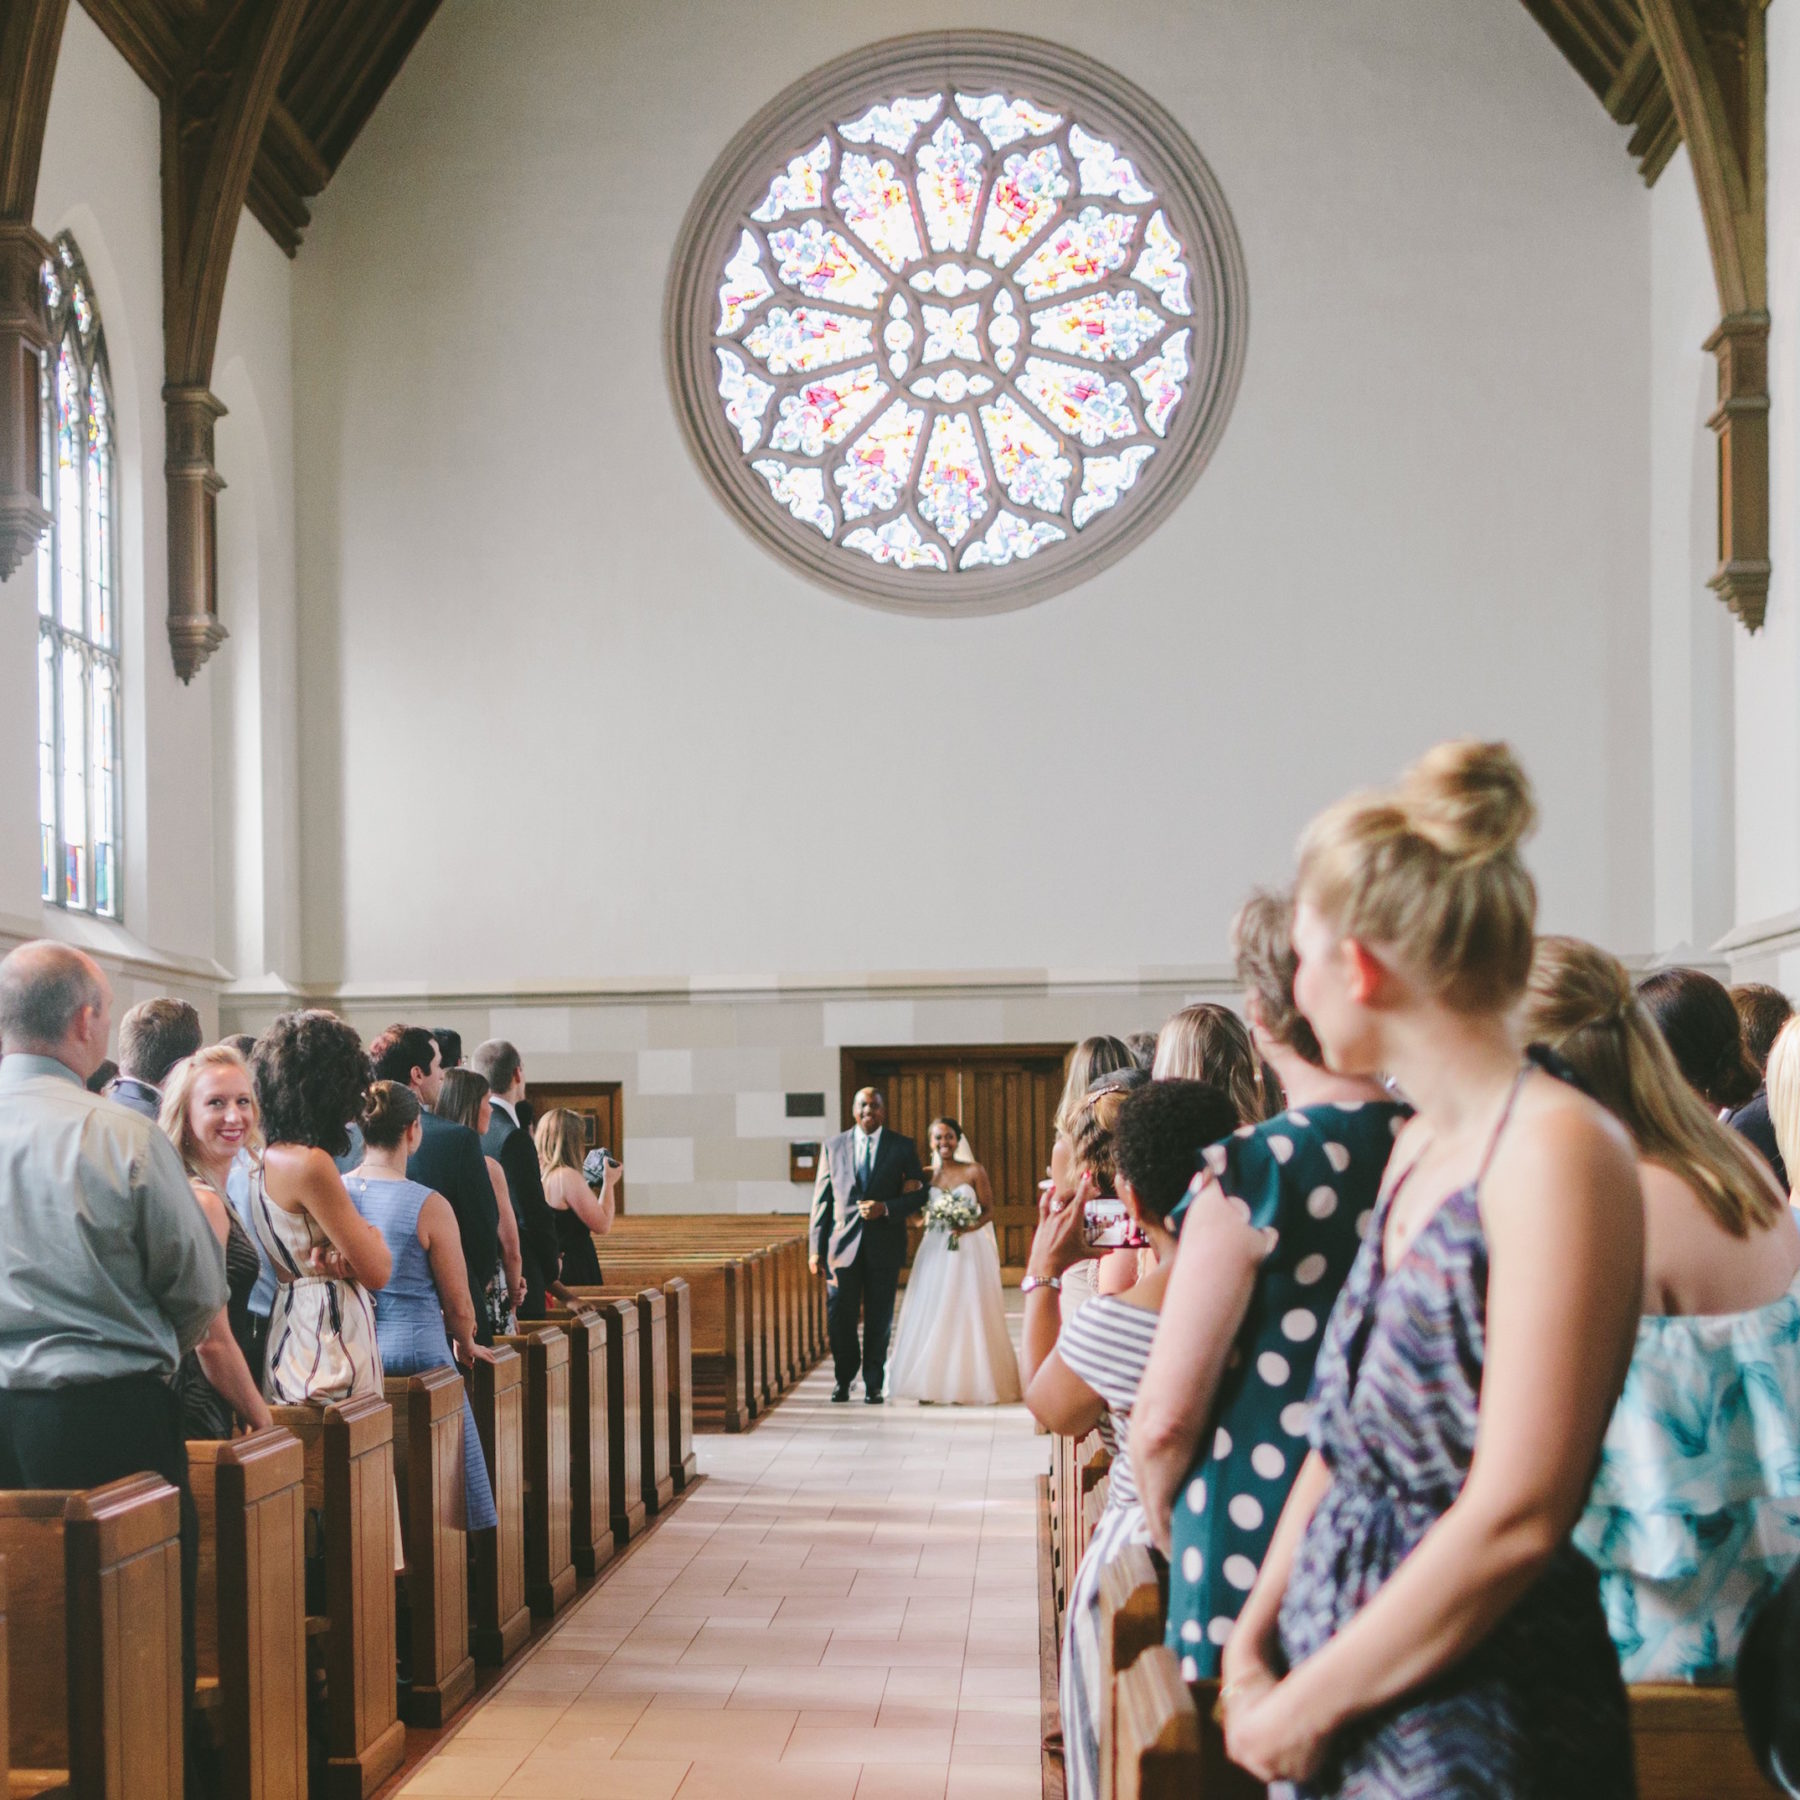 Her Heart: Love in the Aftermath of Charlottesville